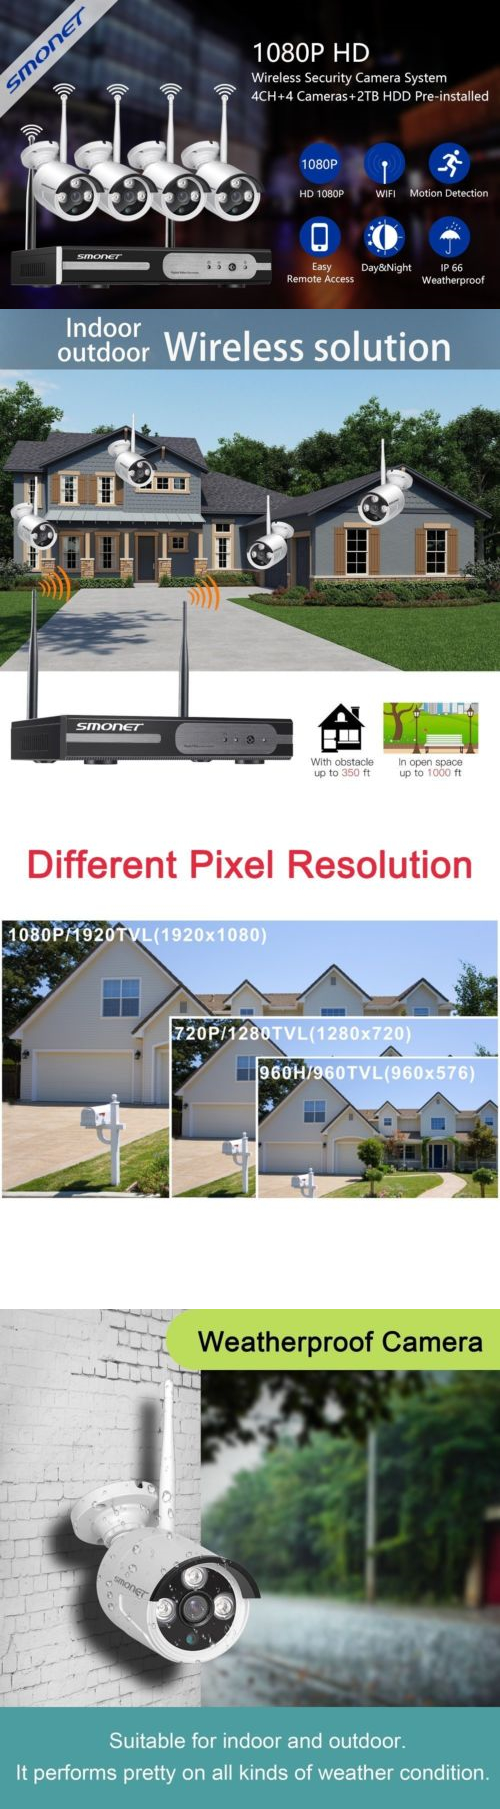 medium resolution of security cameras outdoor wireless clear picture 4 1080p security bullet ip camera system 2tb nvr